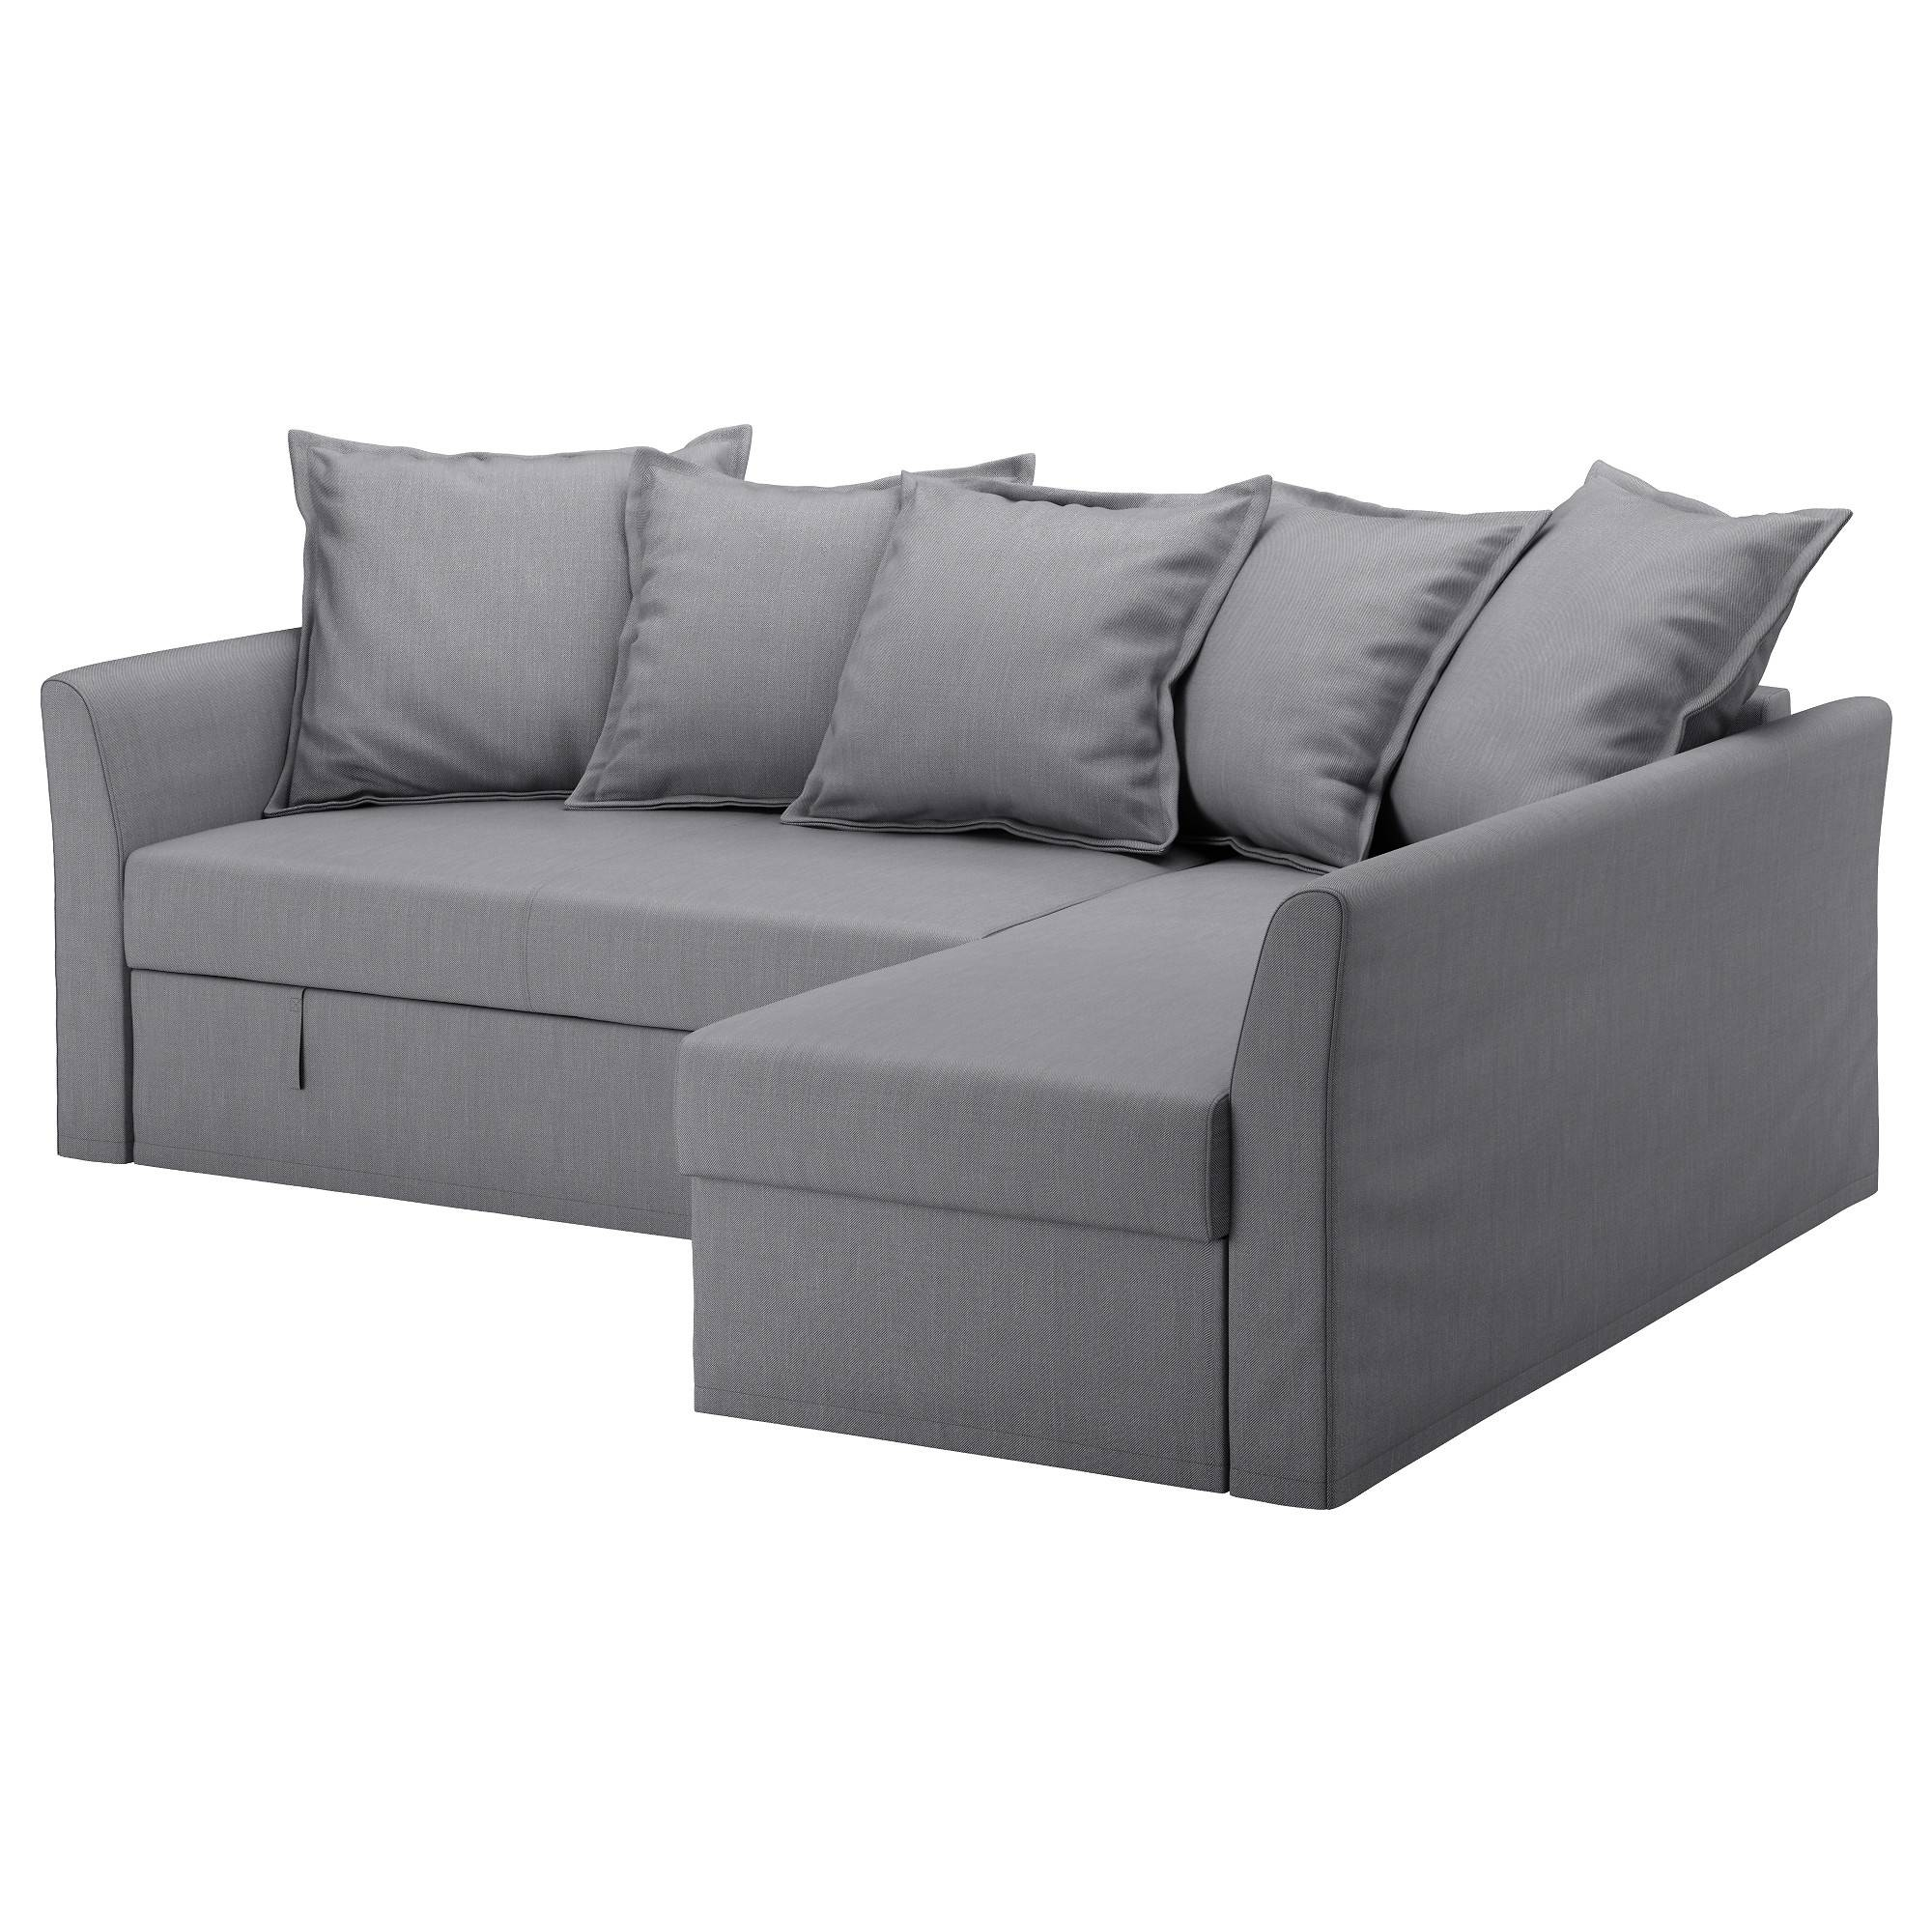 Ikea Sleeper Sofa With Chaise – Ansugallery Regarding Sleeper Sofa Sectional Ikea (View 12 of 25)